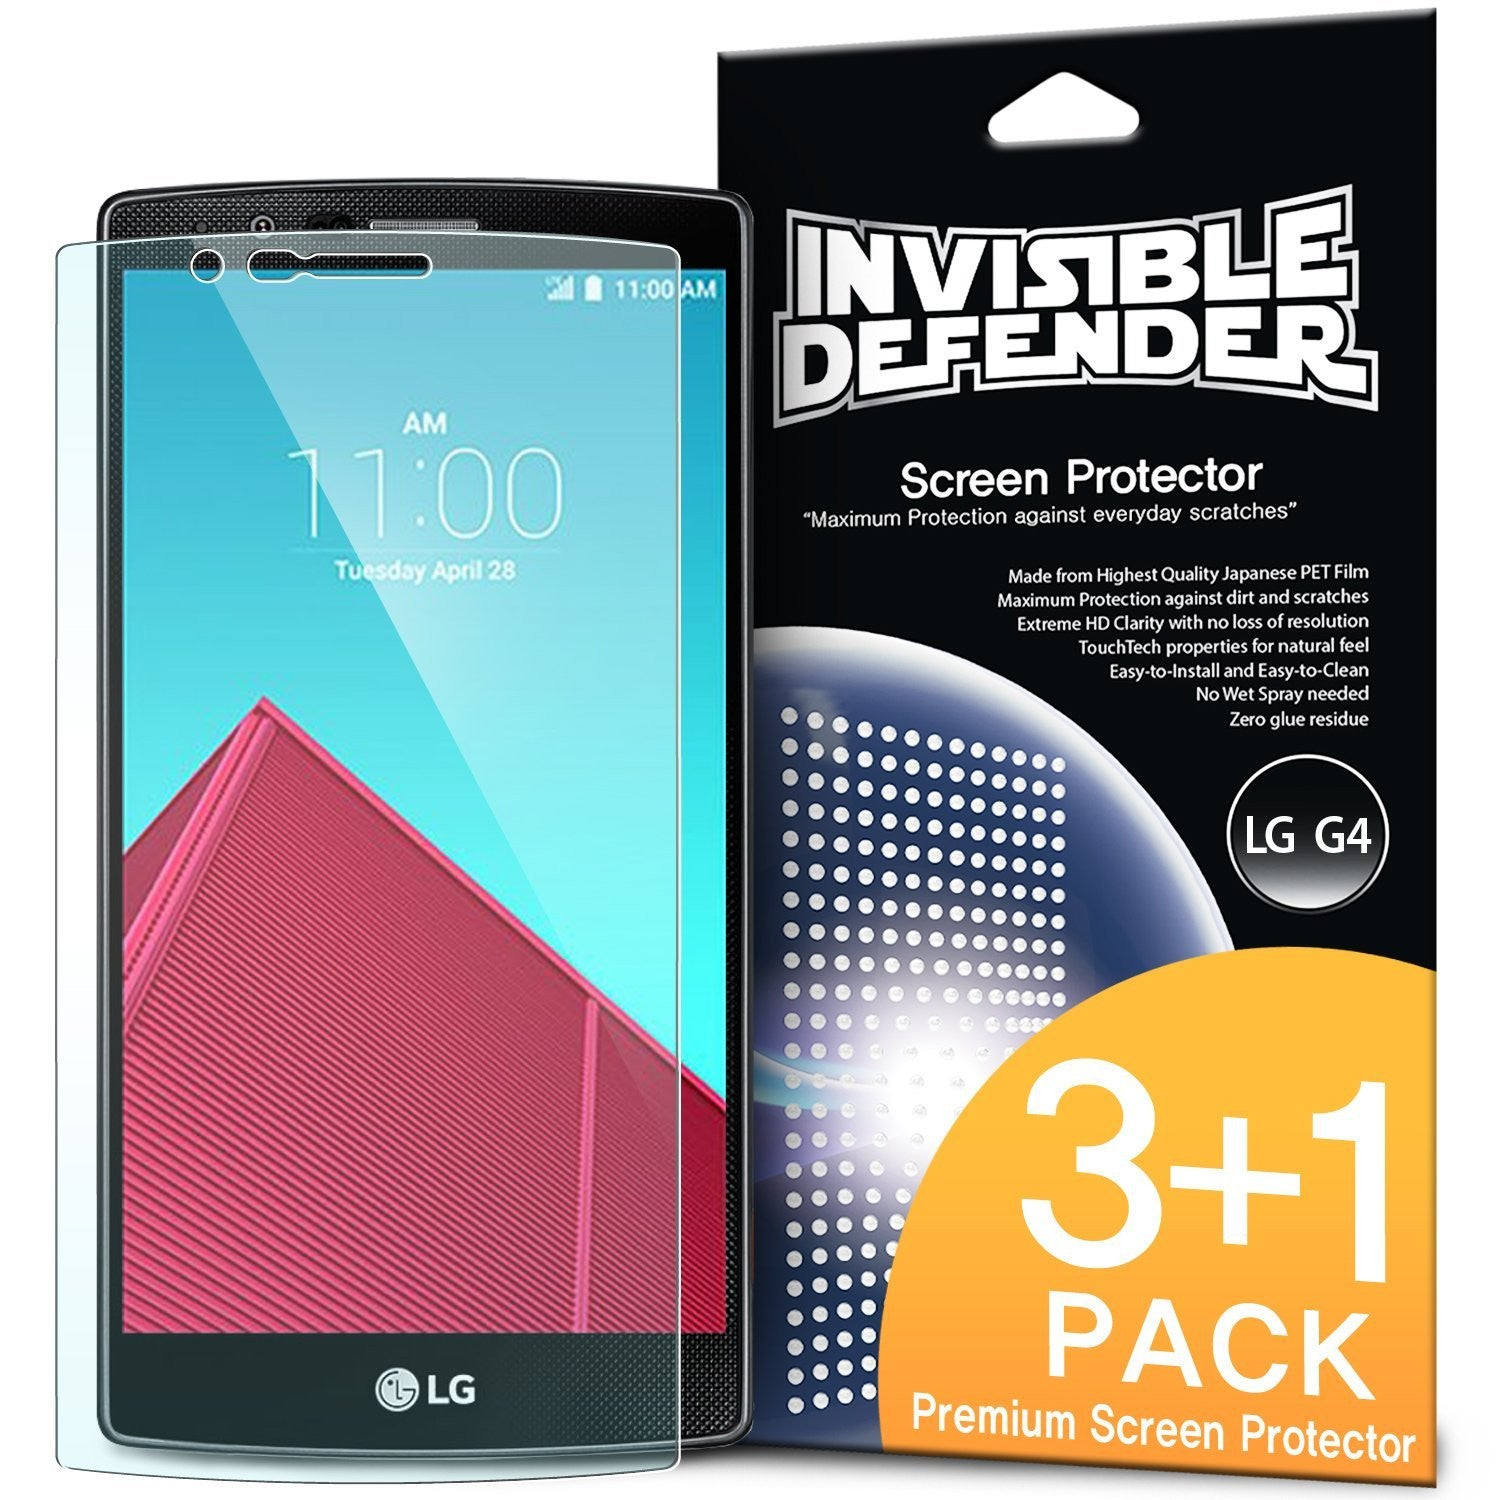 lg g4 screen protector, ringke invisible defender 3+1 pack screen protector